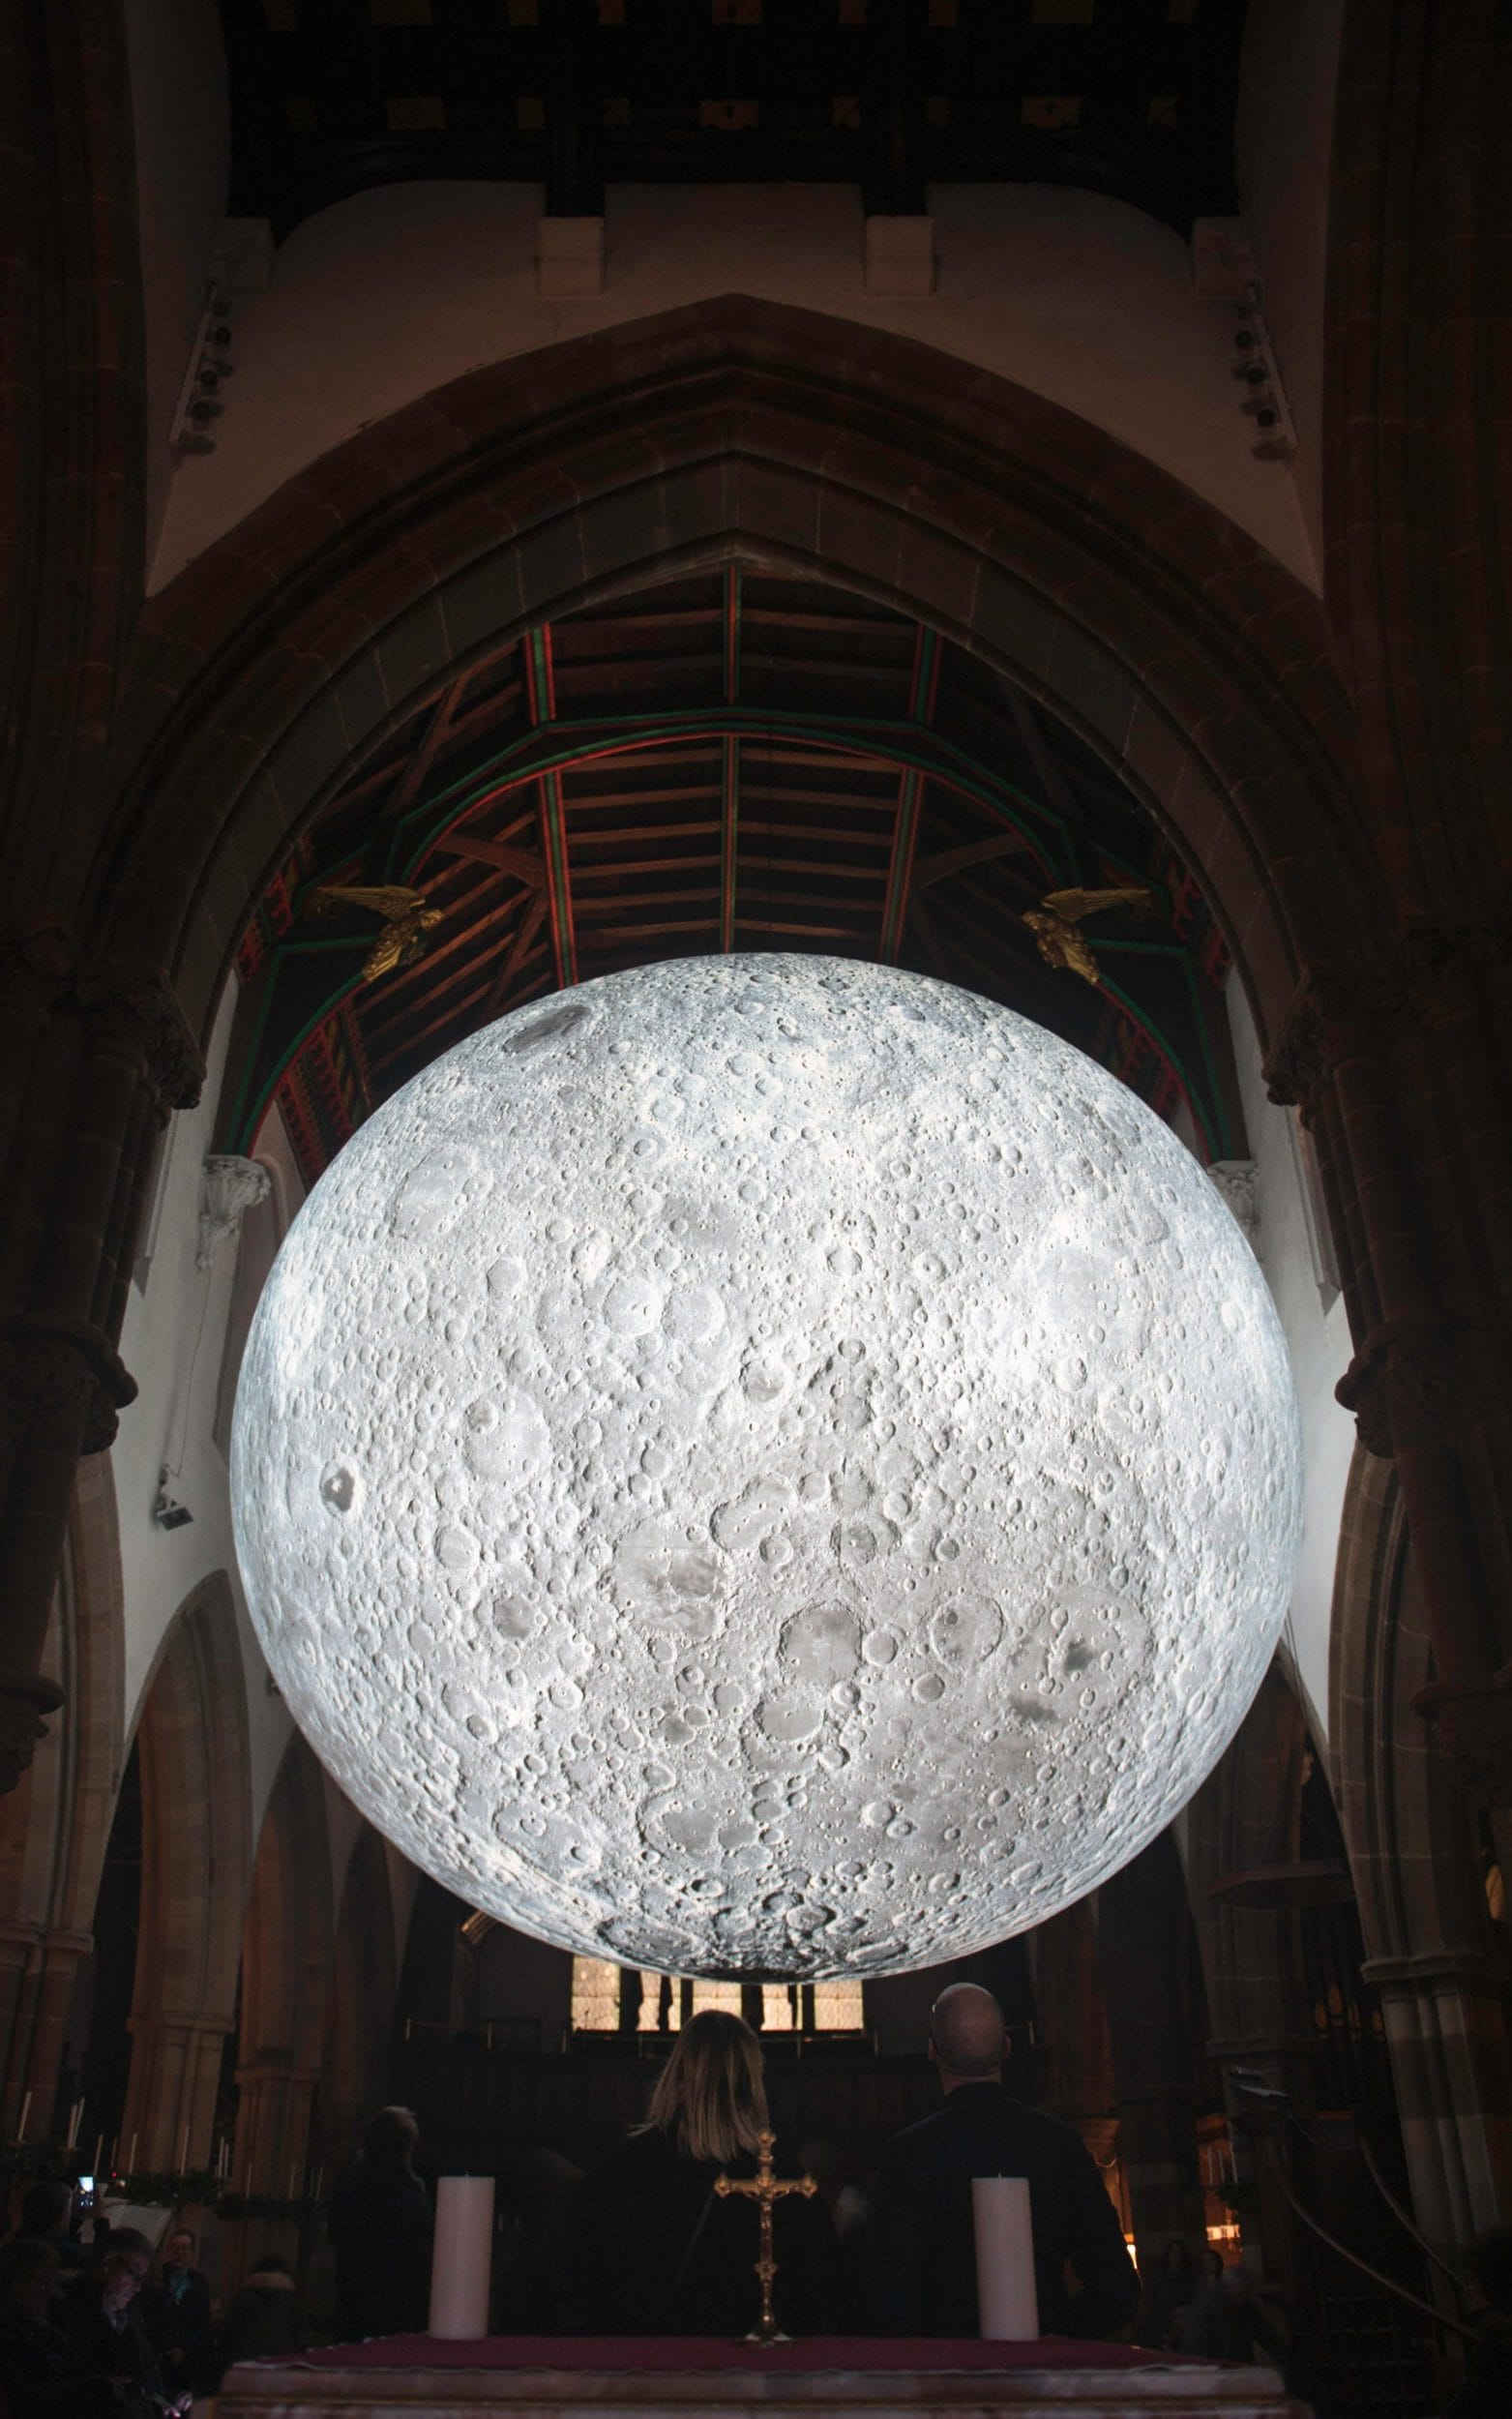 A Giant Moon Sculpture Is Suspended In The Nave Of